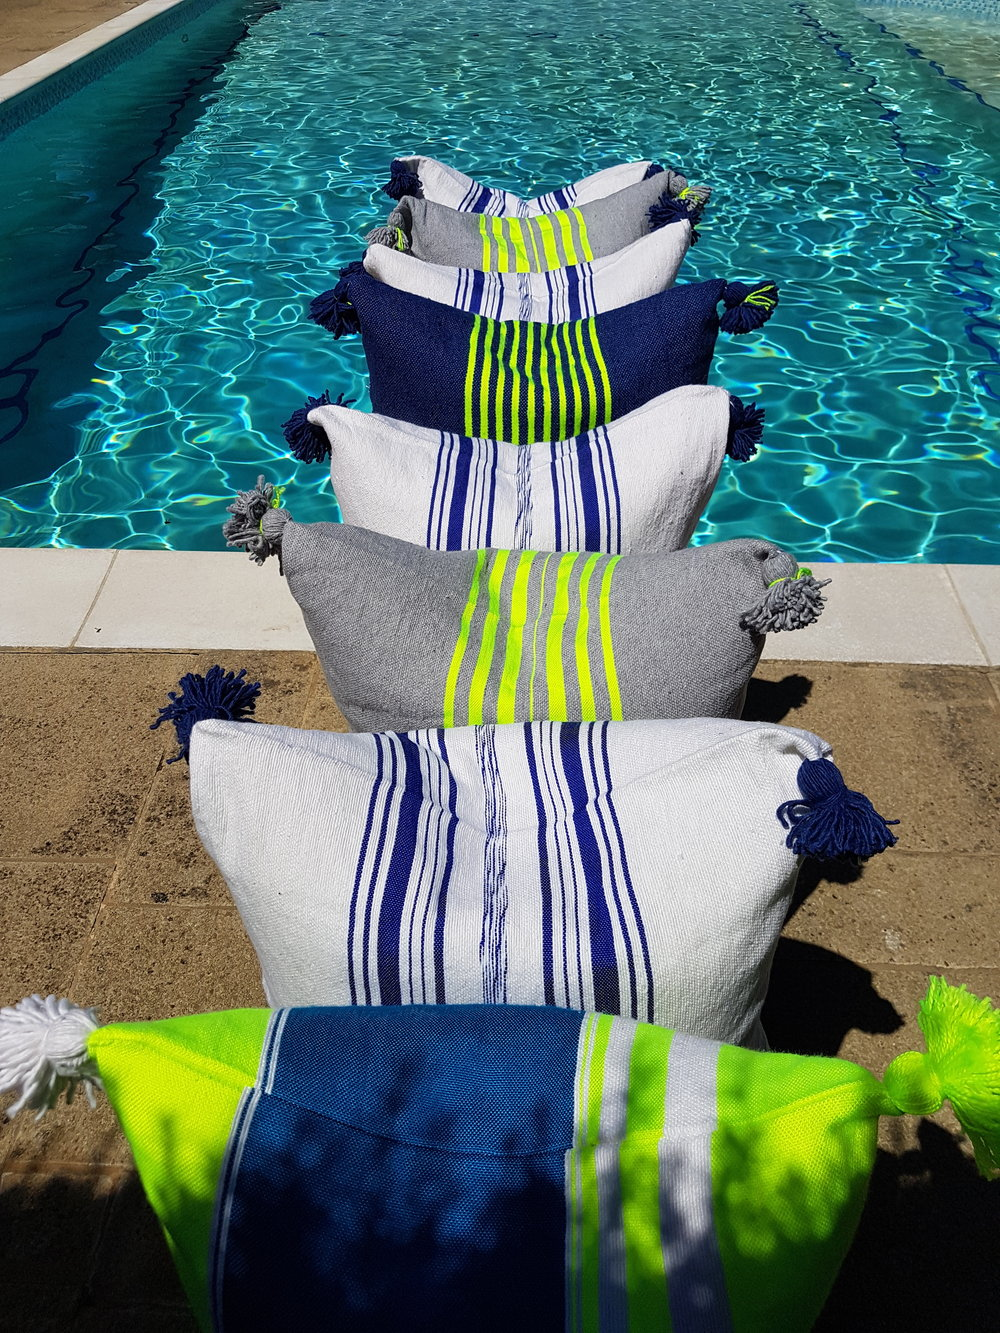 AnnaCoxCushions_Styling_poolcushions.jpg